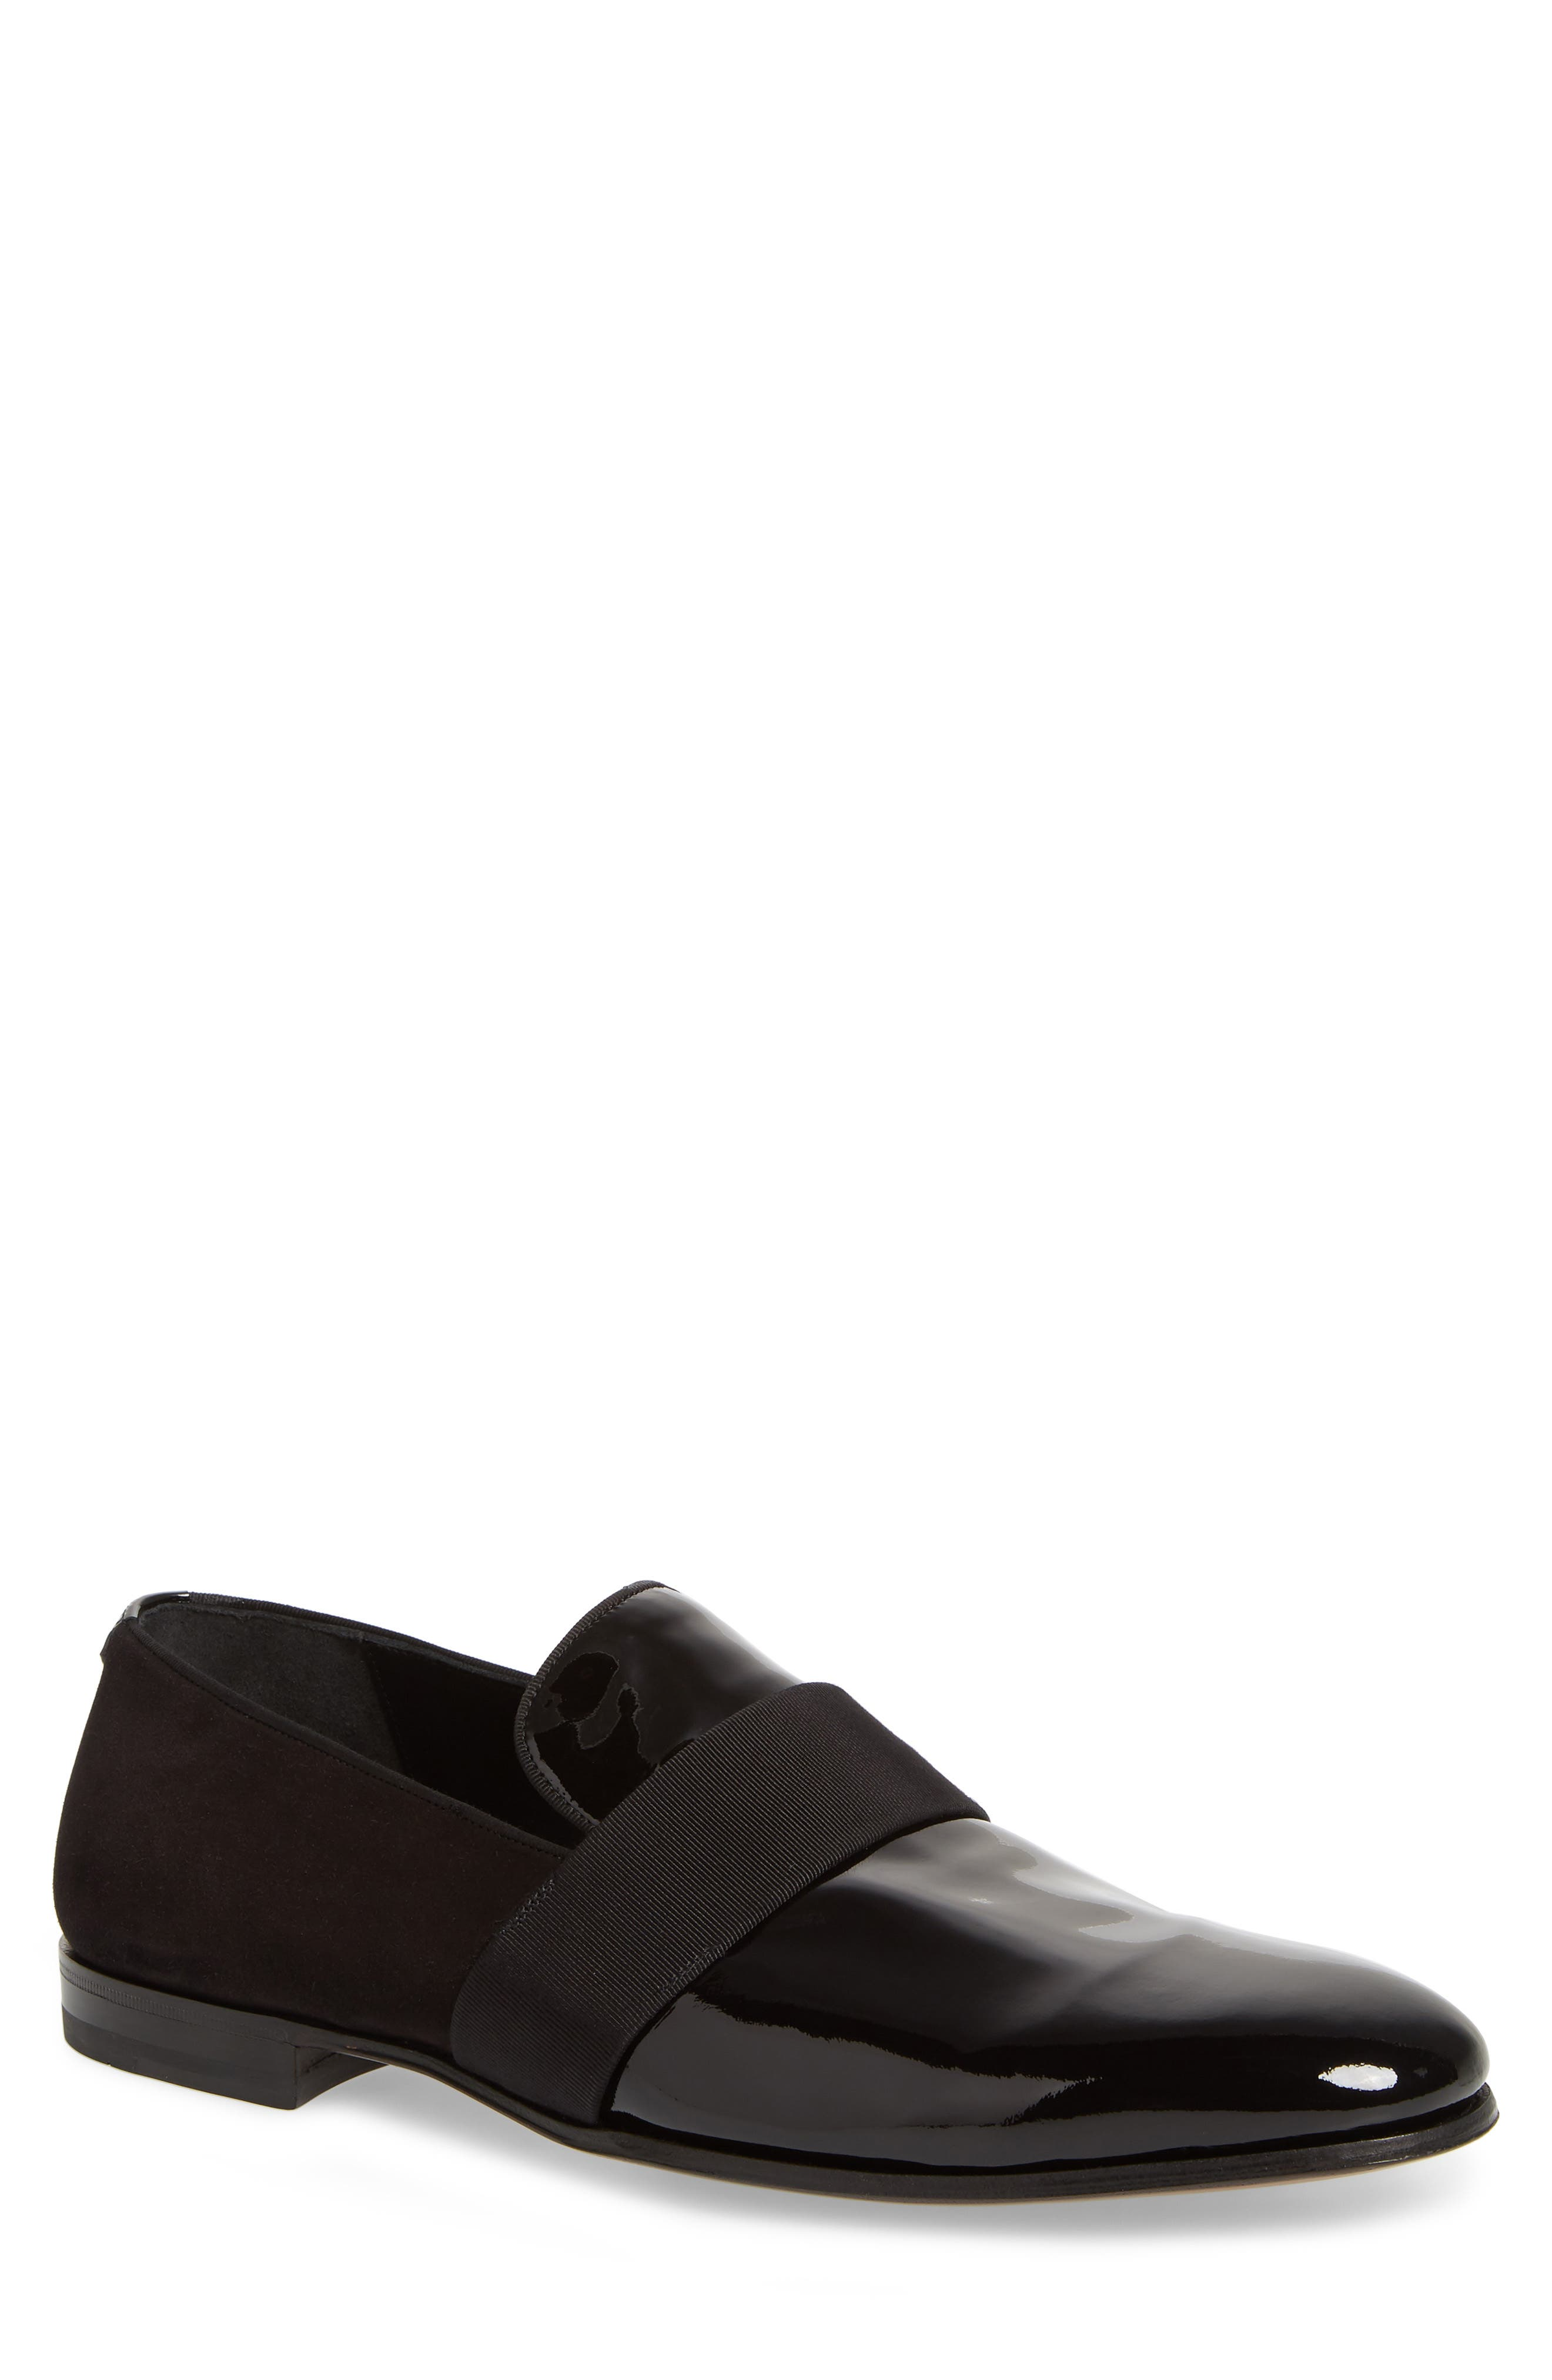 SALVATORE FERRAGAMO, Bryden Banded Loafer, Main thumbnail 1, color, NERO